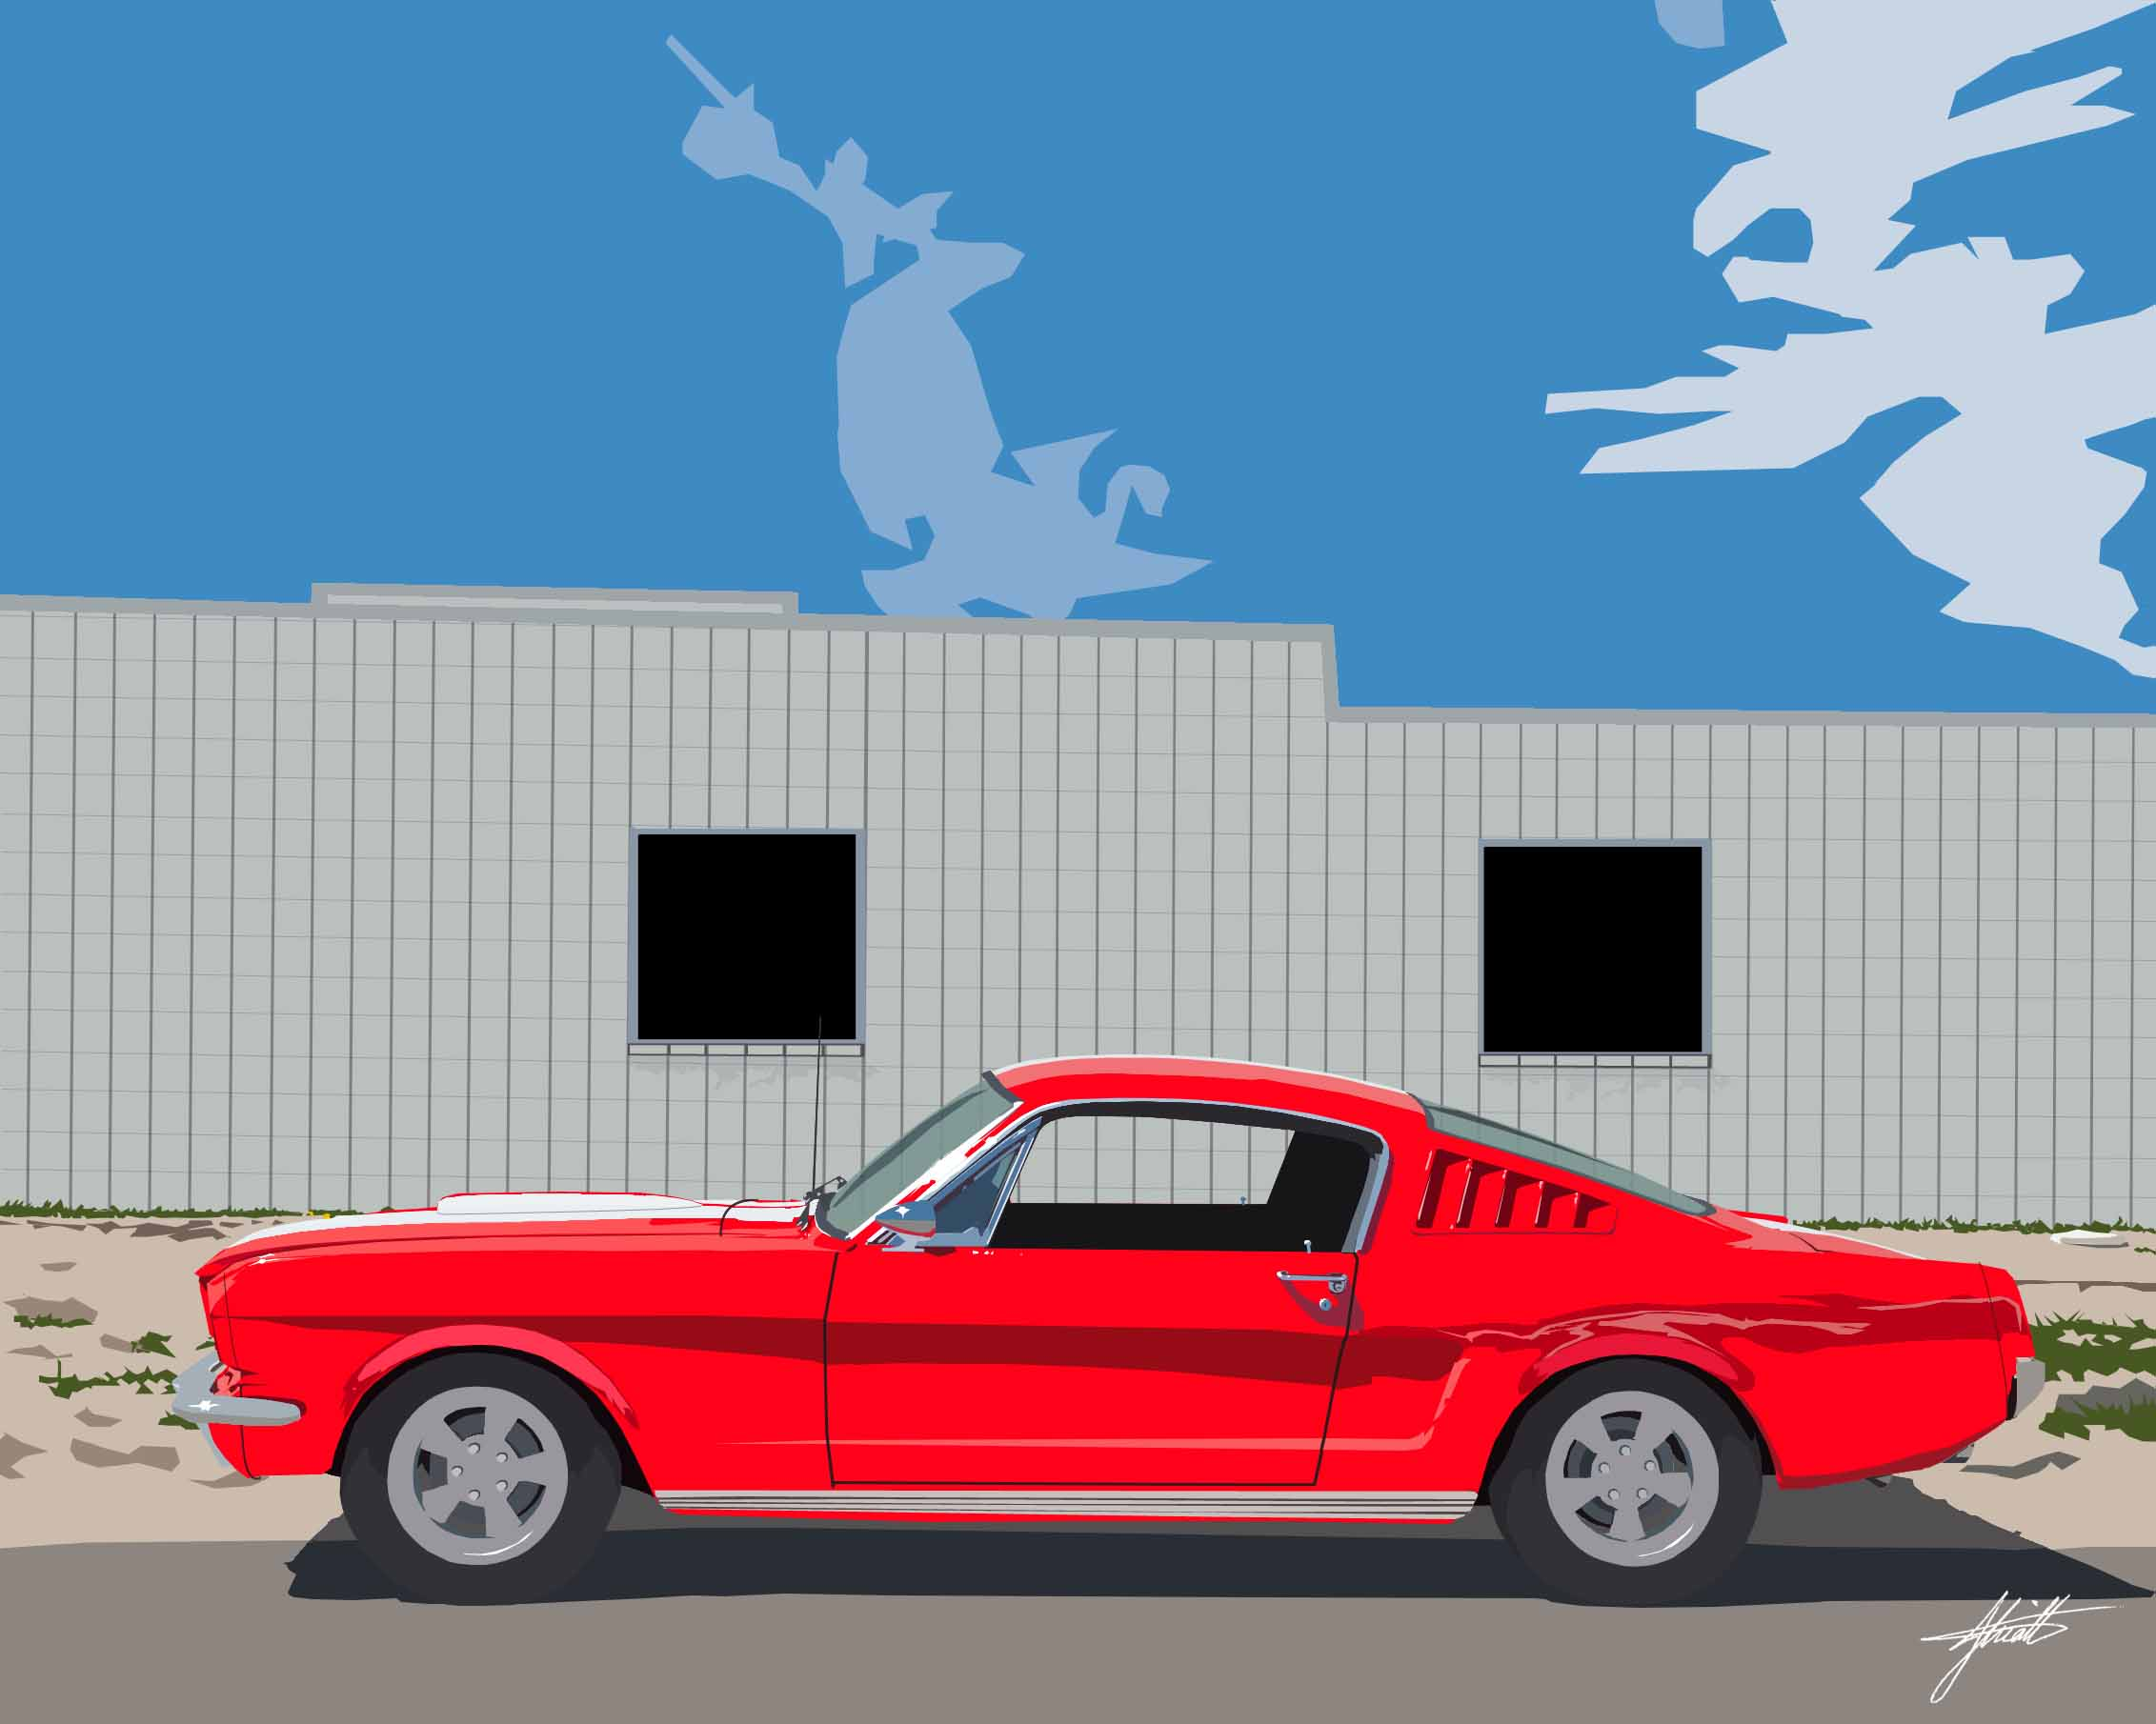 JHK Design Original Red Mustang